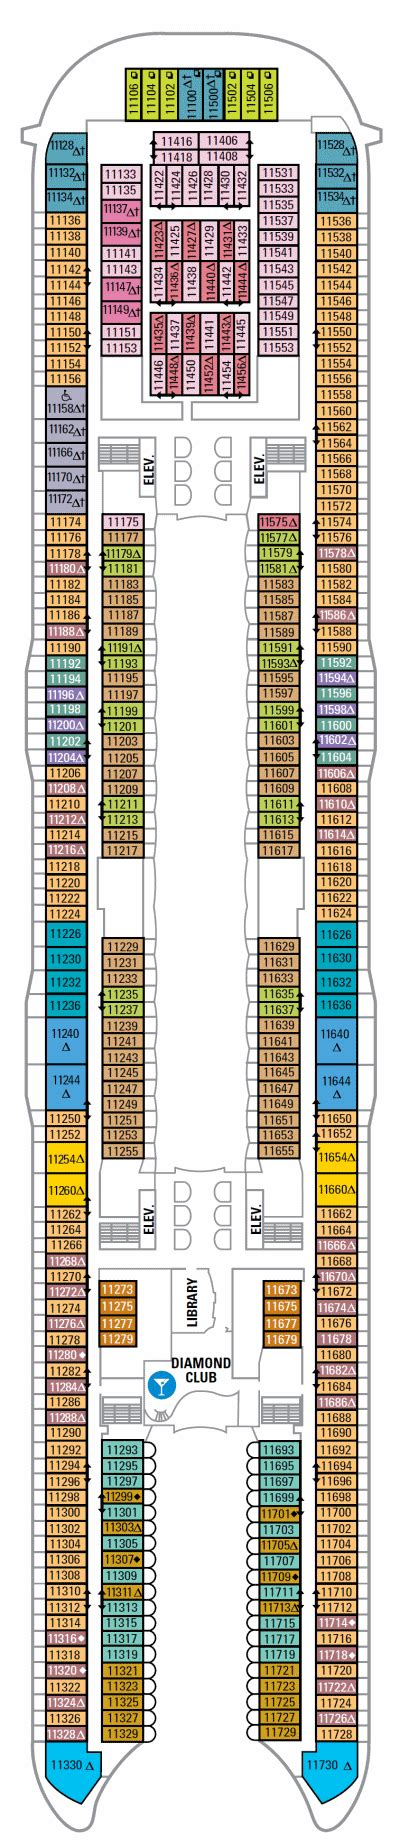 oasis of the seas floor plan royal caribbean cruises royal caribbean cruise cruises